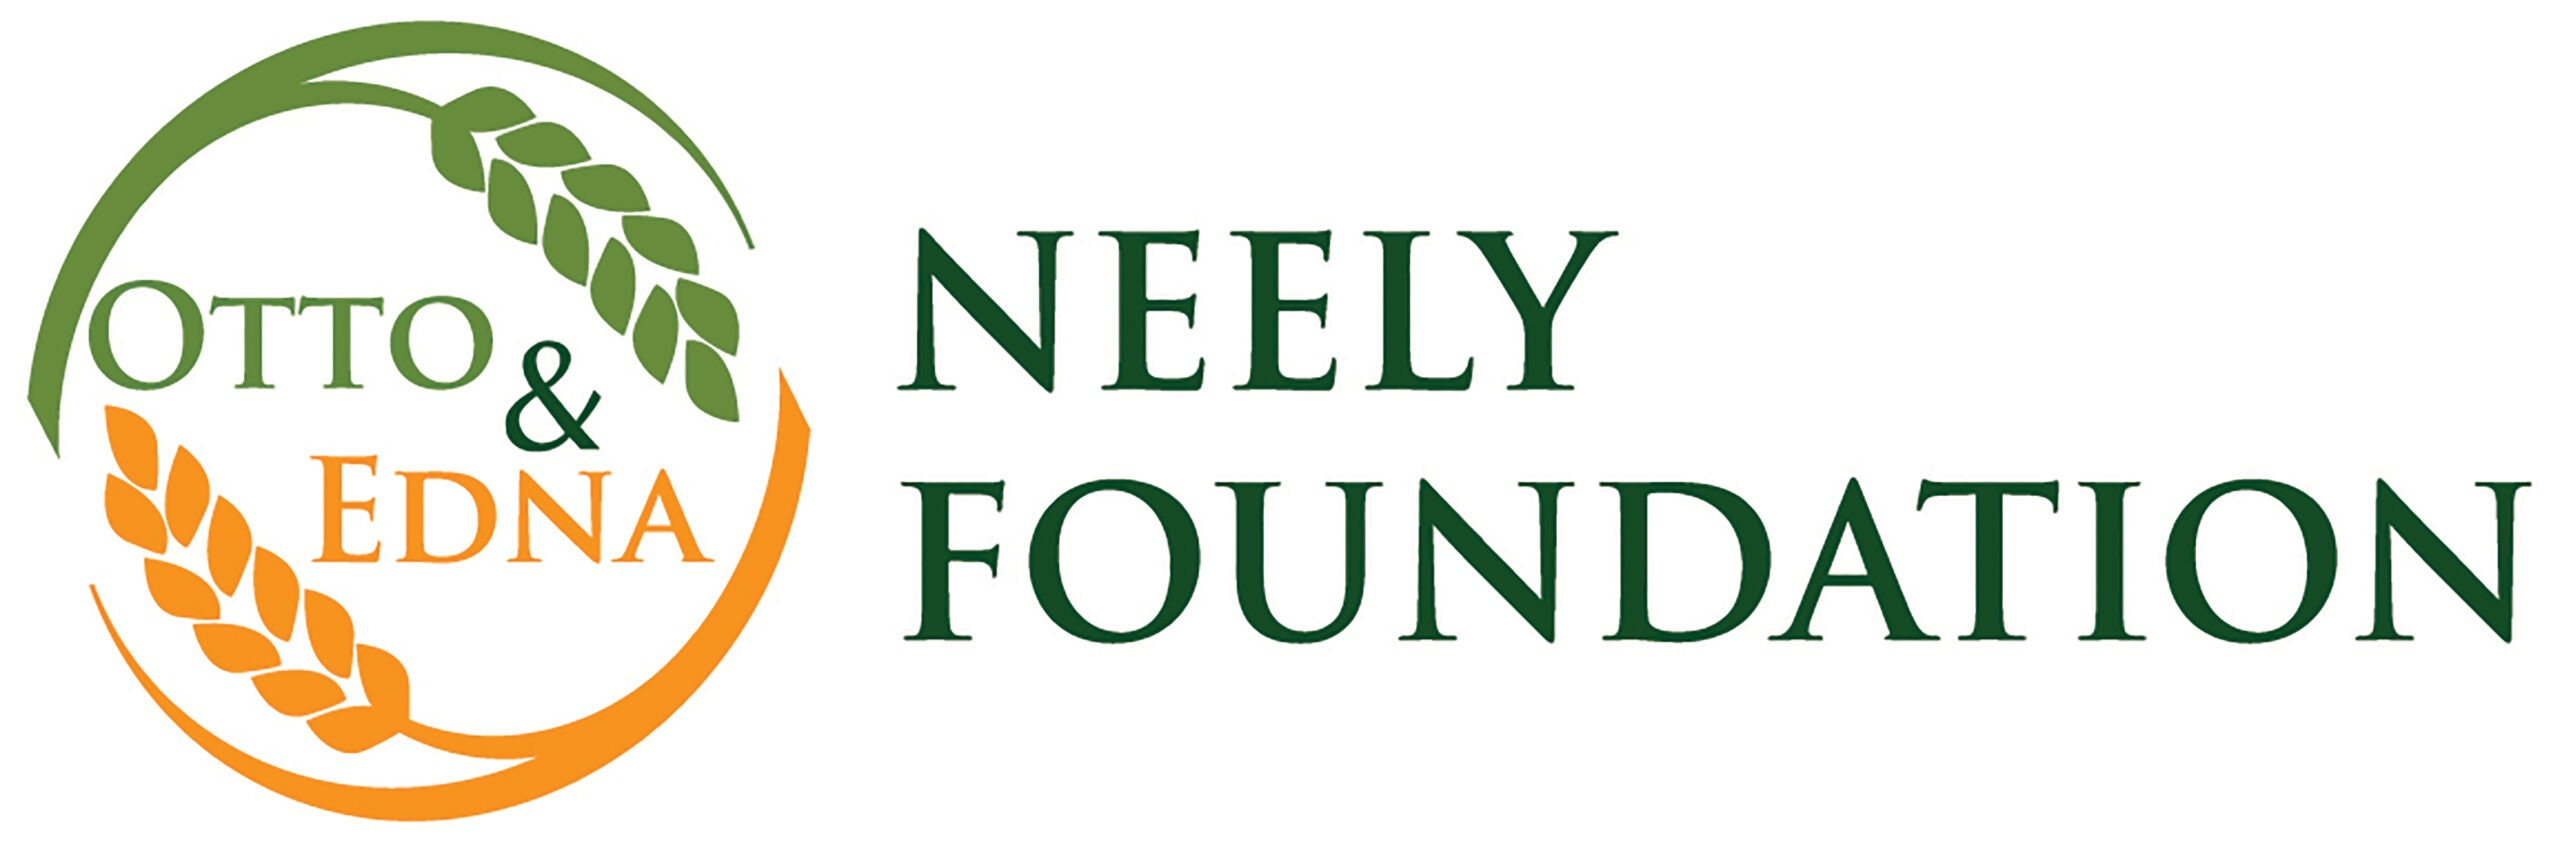 Otto and Edna Neely Foundation